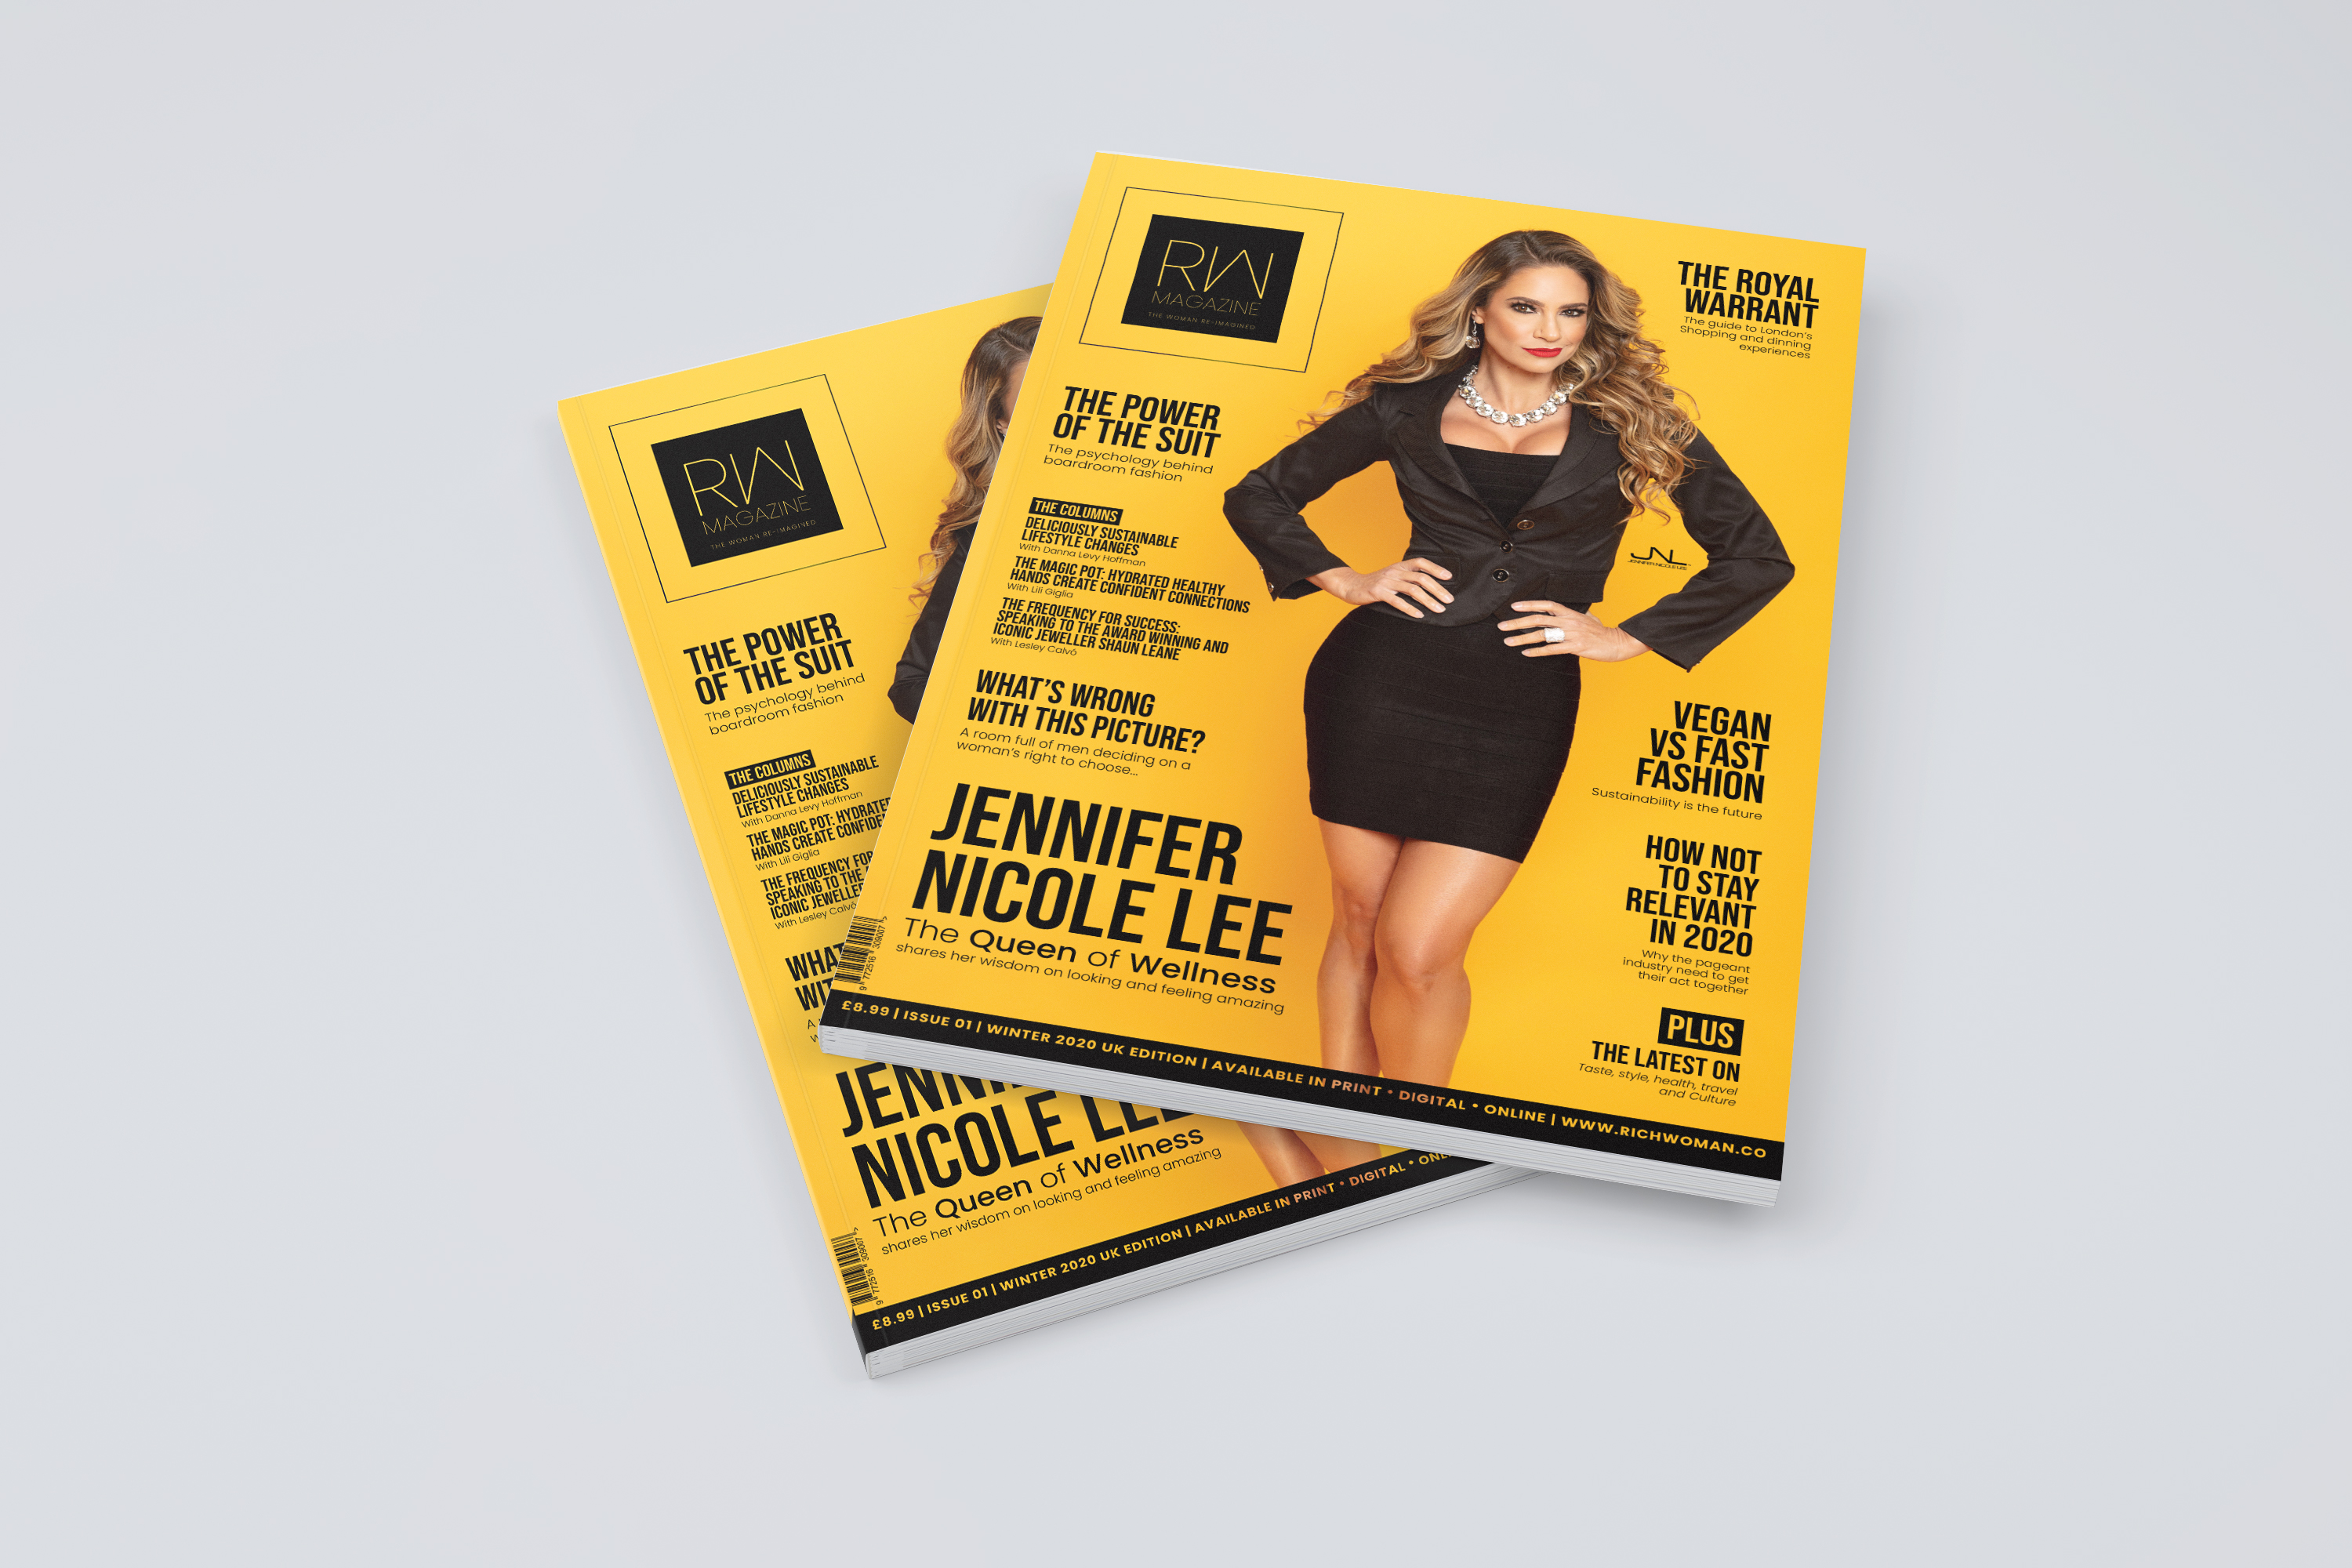 MTN Press Limited is excited to announce the launch of its new British Luxury Lifestyle magazine, Rich Woman in January 2020!